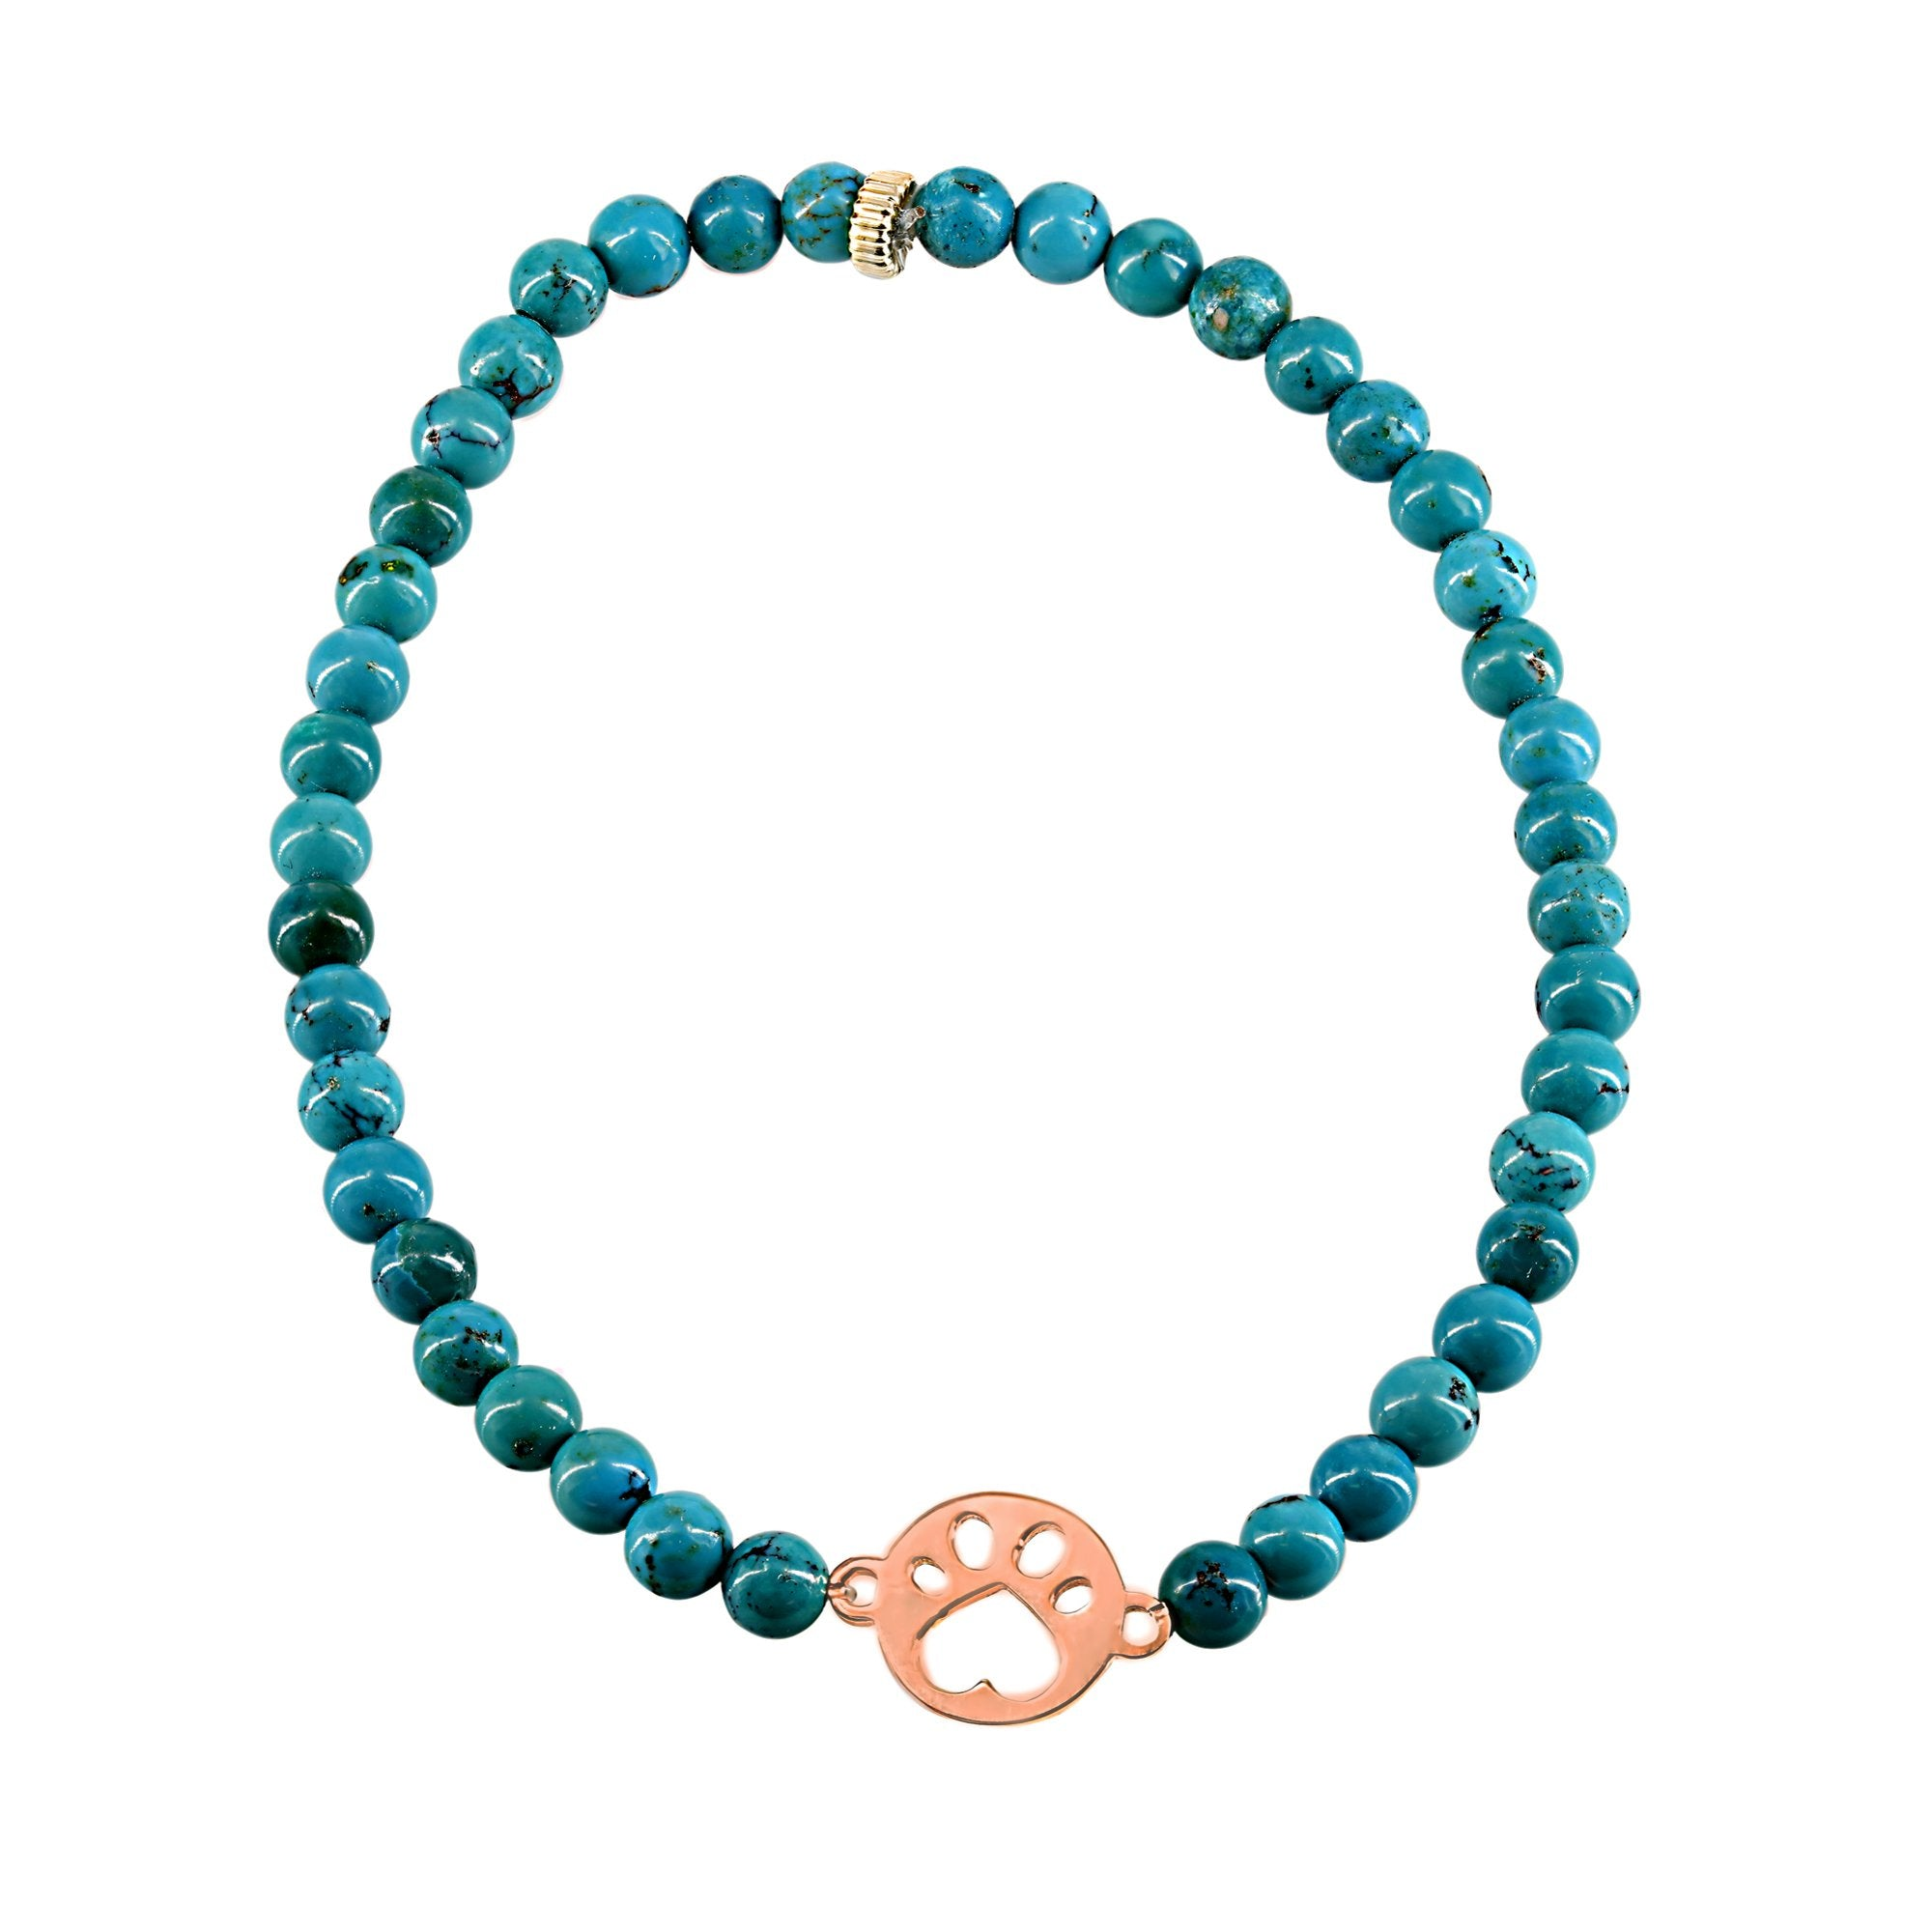 Our Cause for Paws 14k Rose Gold Mini Paw Bead Bracelet